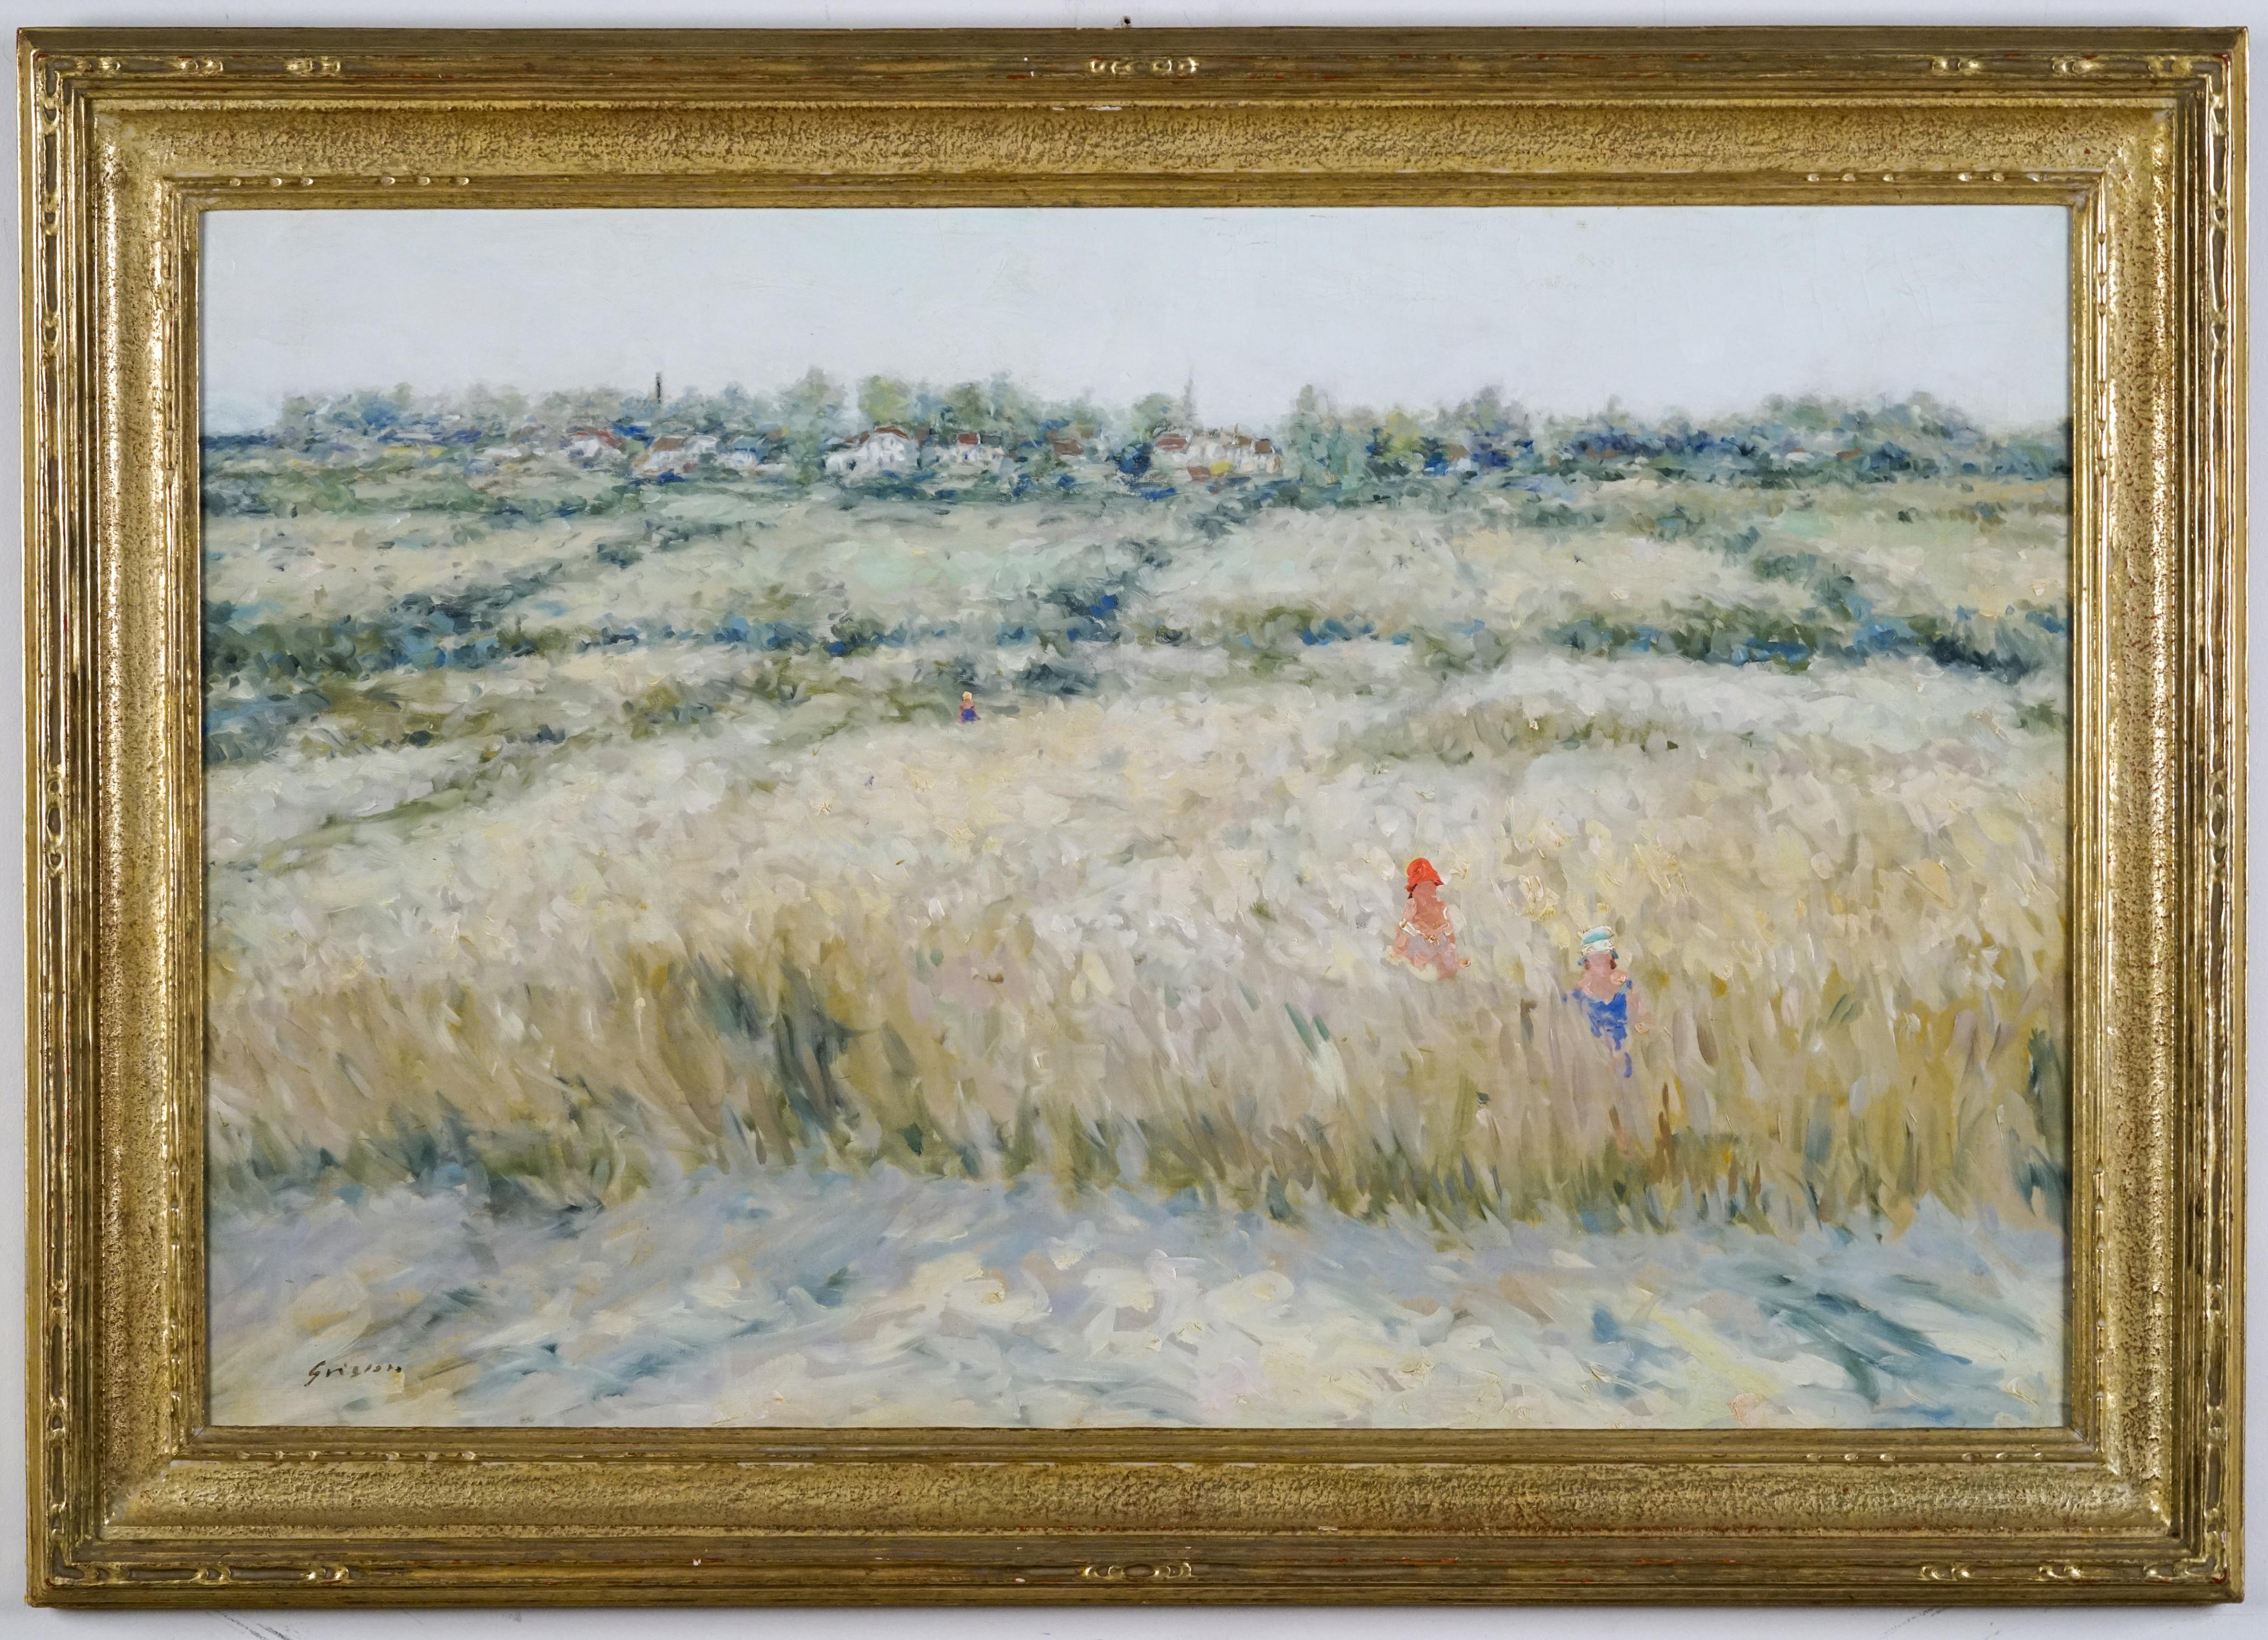 Mother & Child in a Landscape, framed in an important Carrig Rohane frame